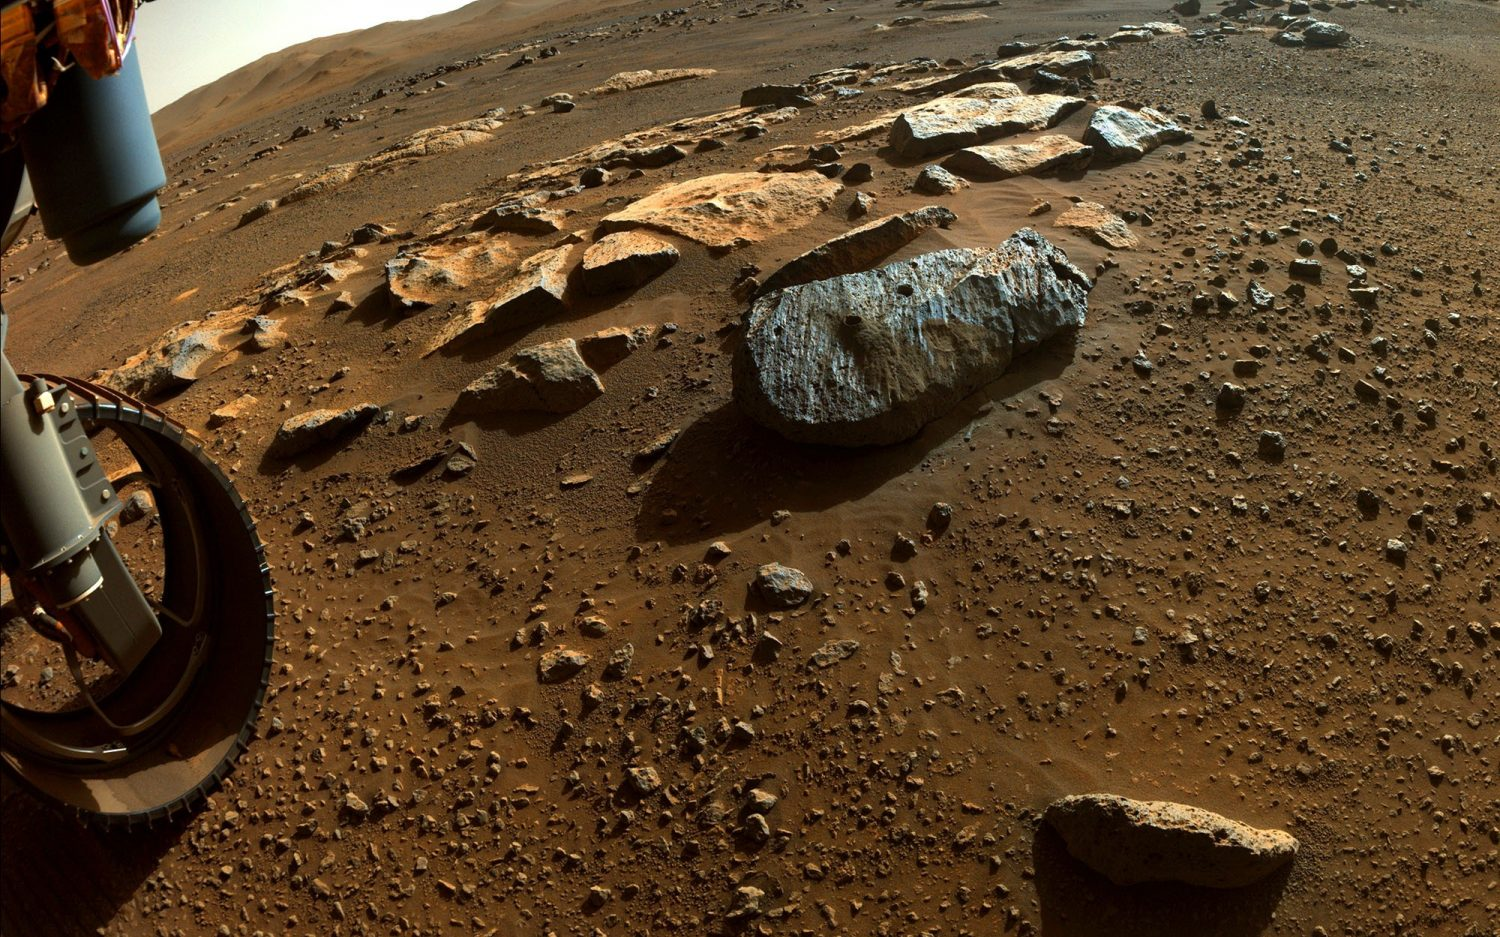 Drilling down on Mars